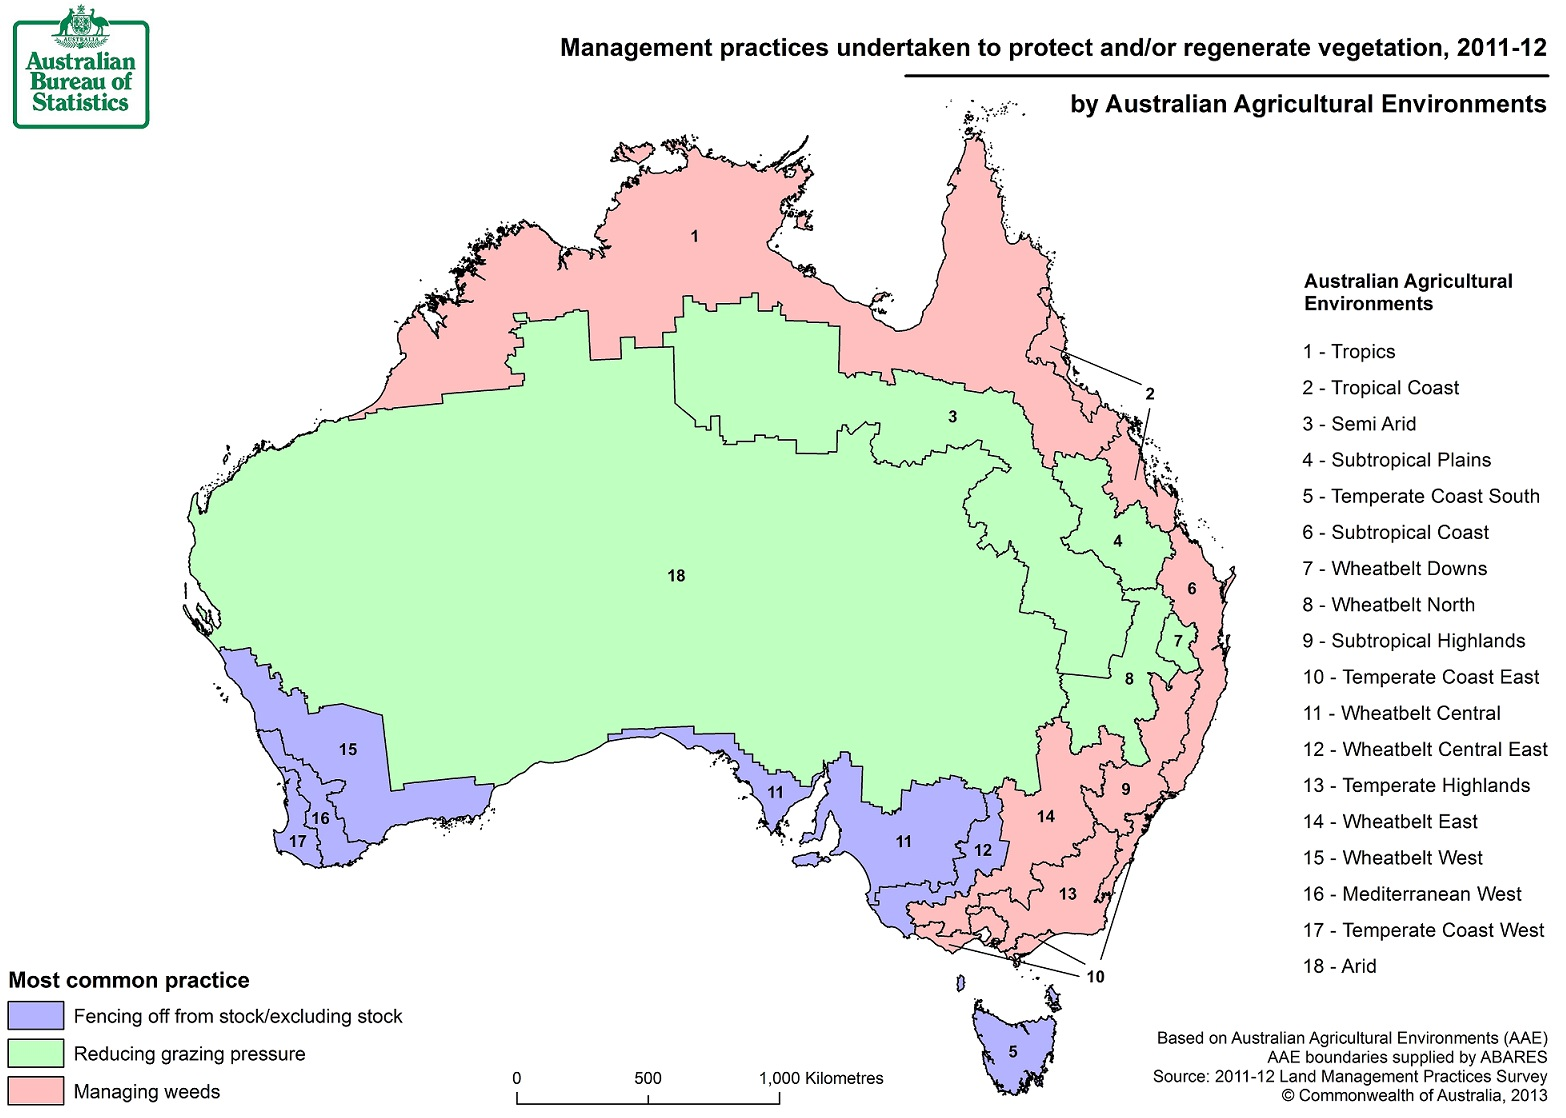 Image: Map of vegetation practices